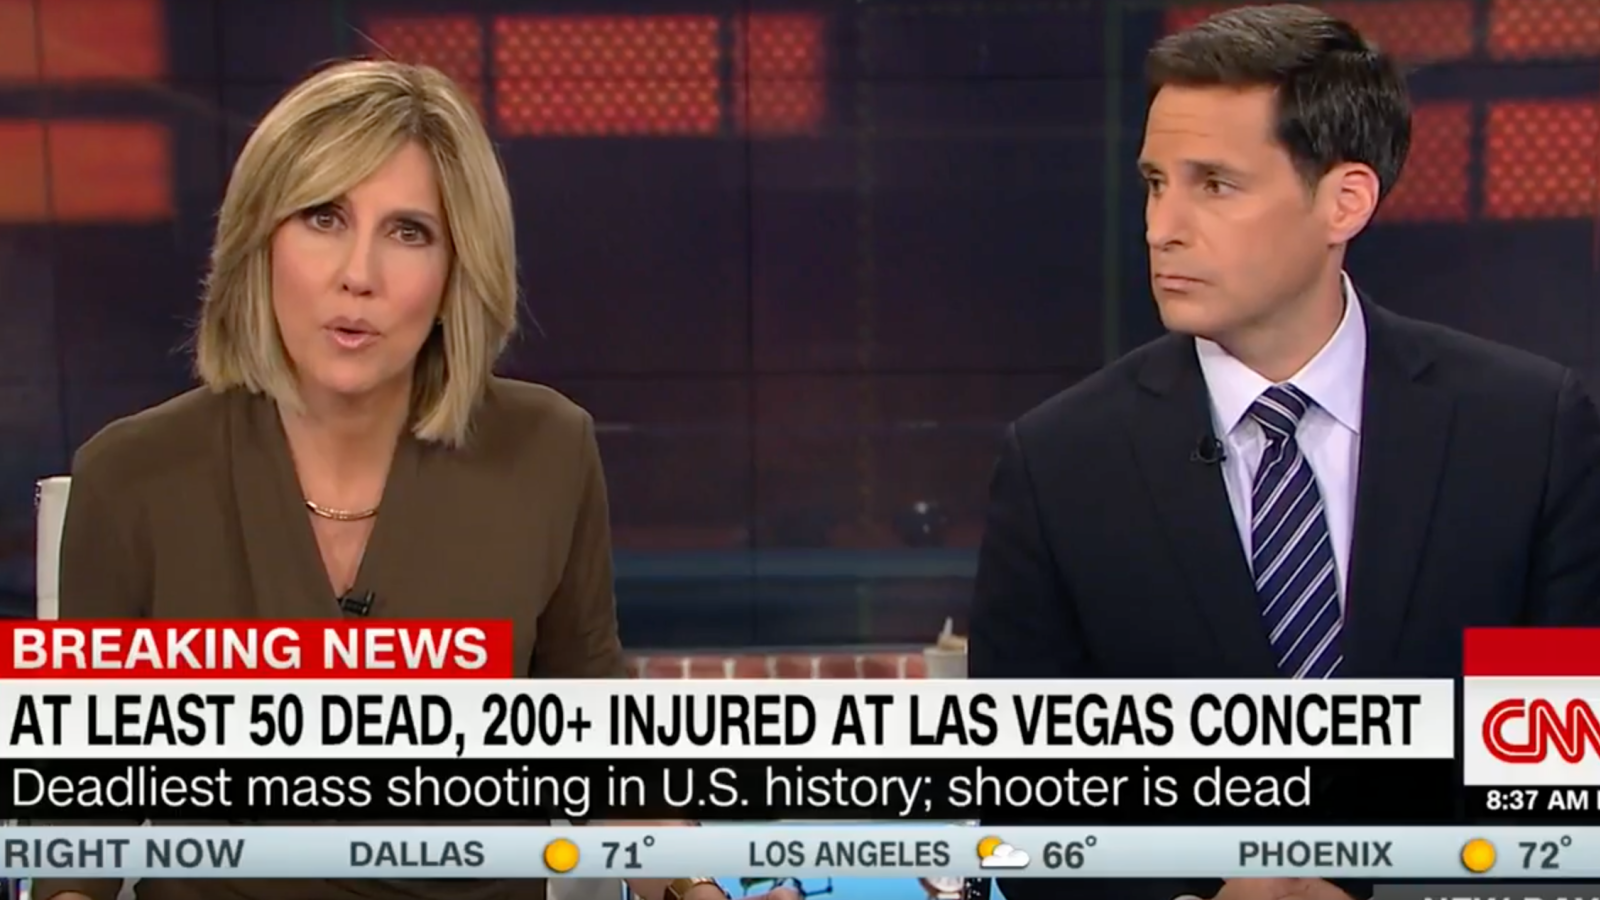 Las Vegas Is Only The Deadliest Shooting In Us History Because Black Lives Aren T Counted Las Vegas Black Lives Las Vegas Concerts